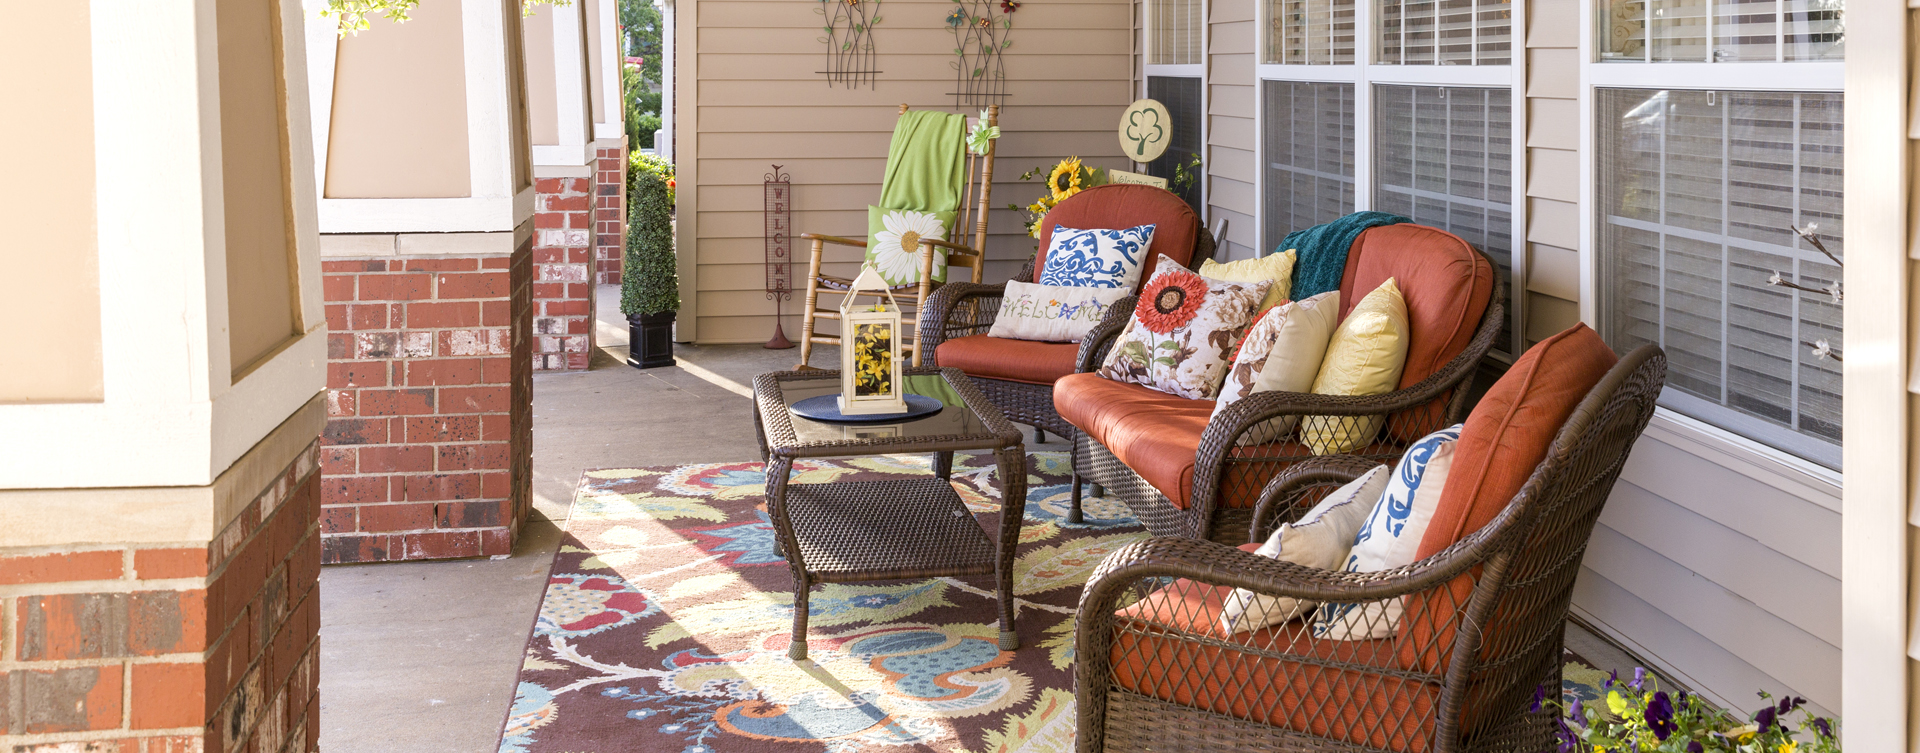 Relax in your favorite chair on the porch at Bickford of Omaha - Hickory